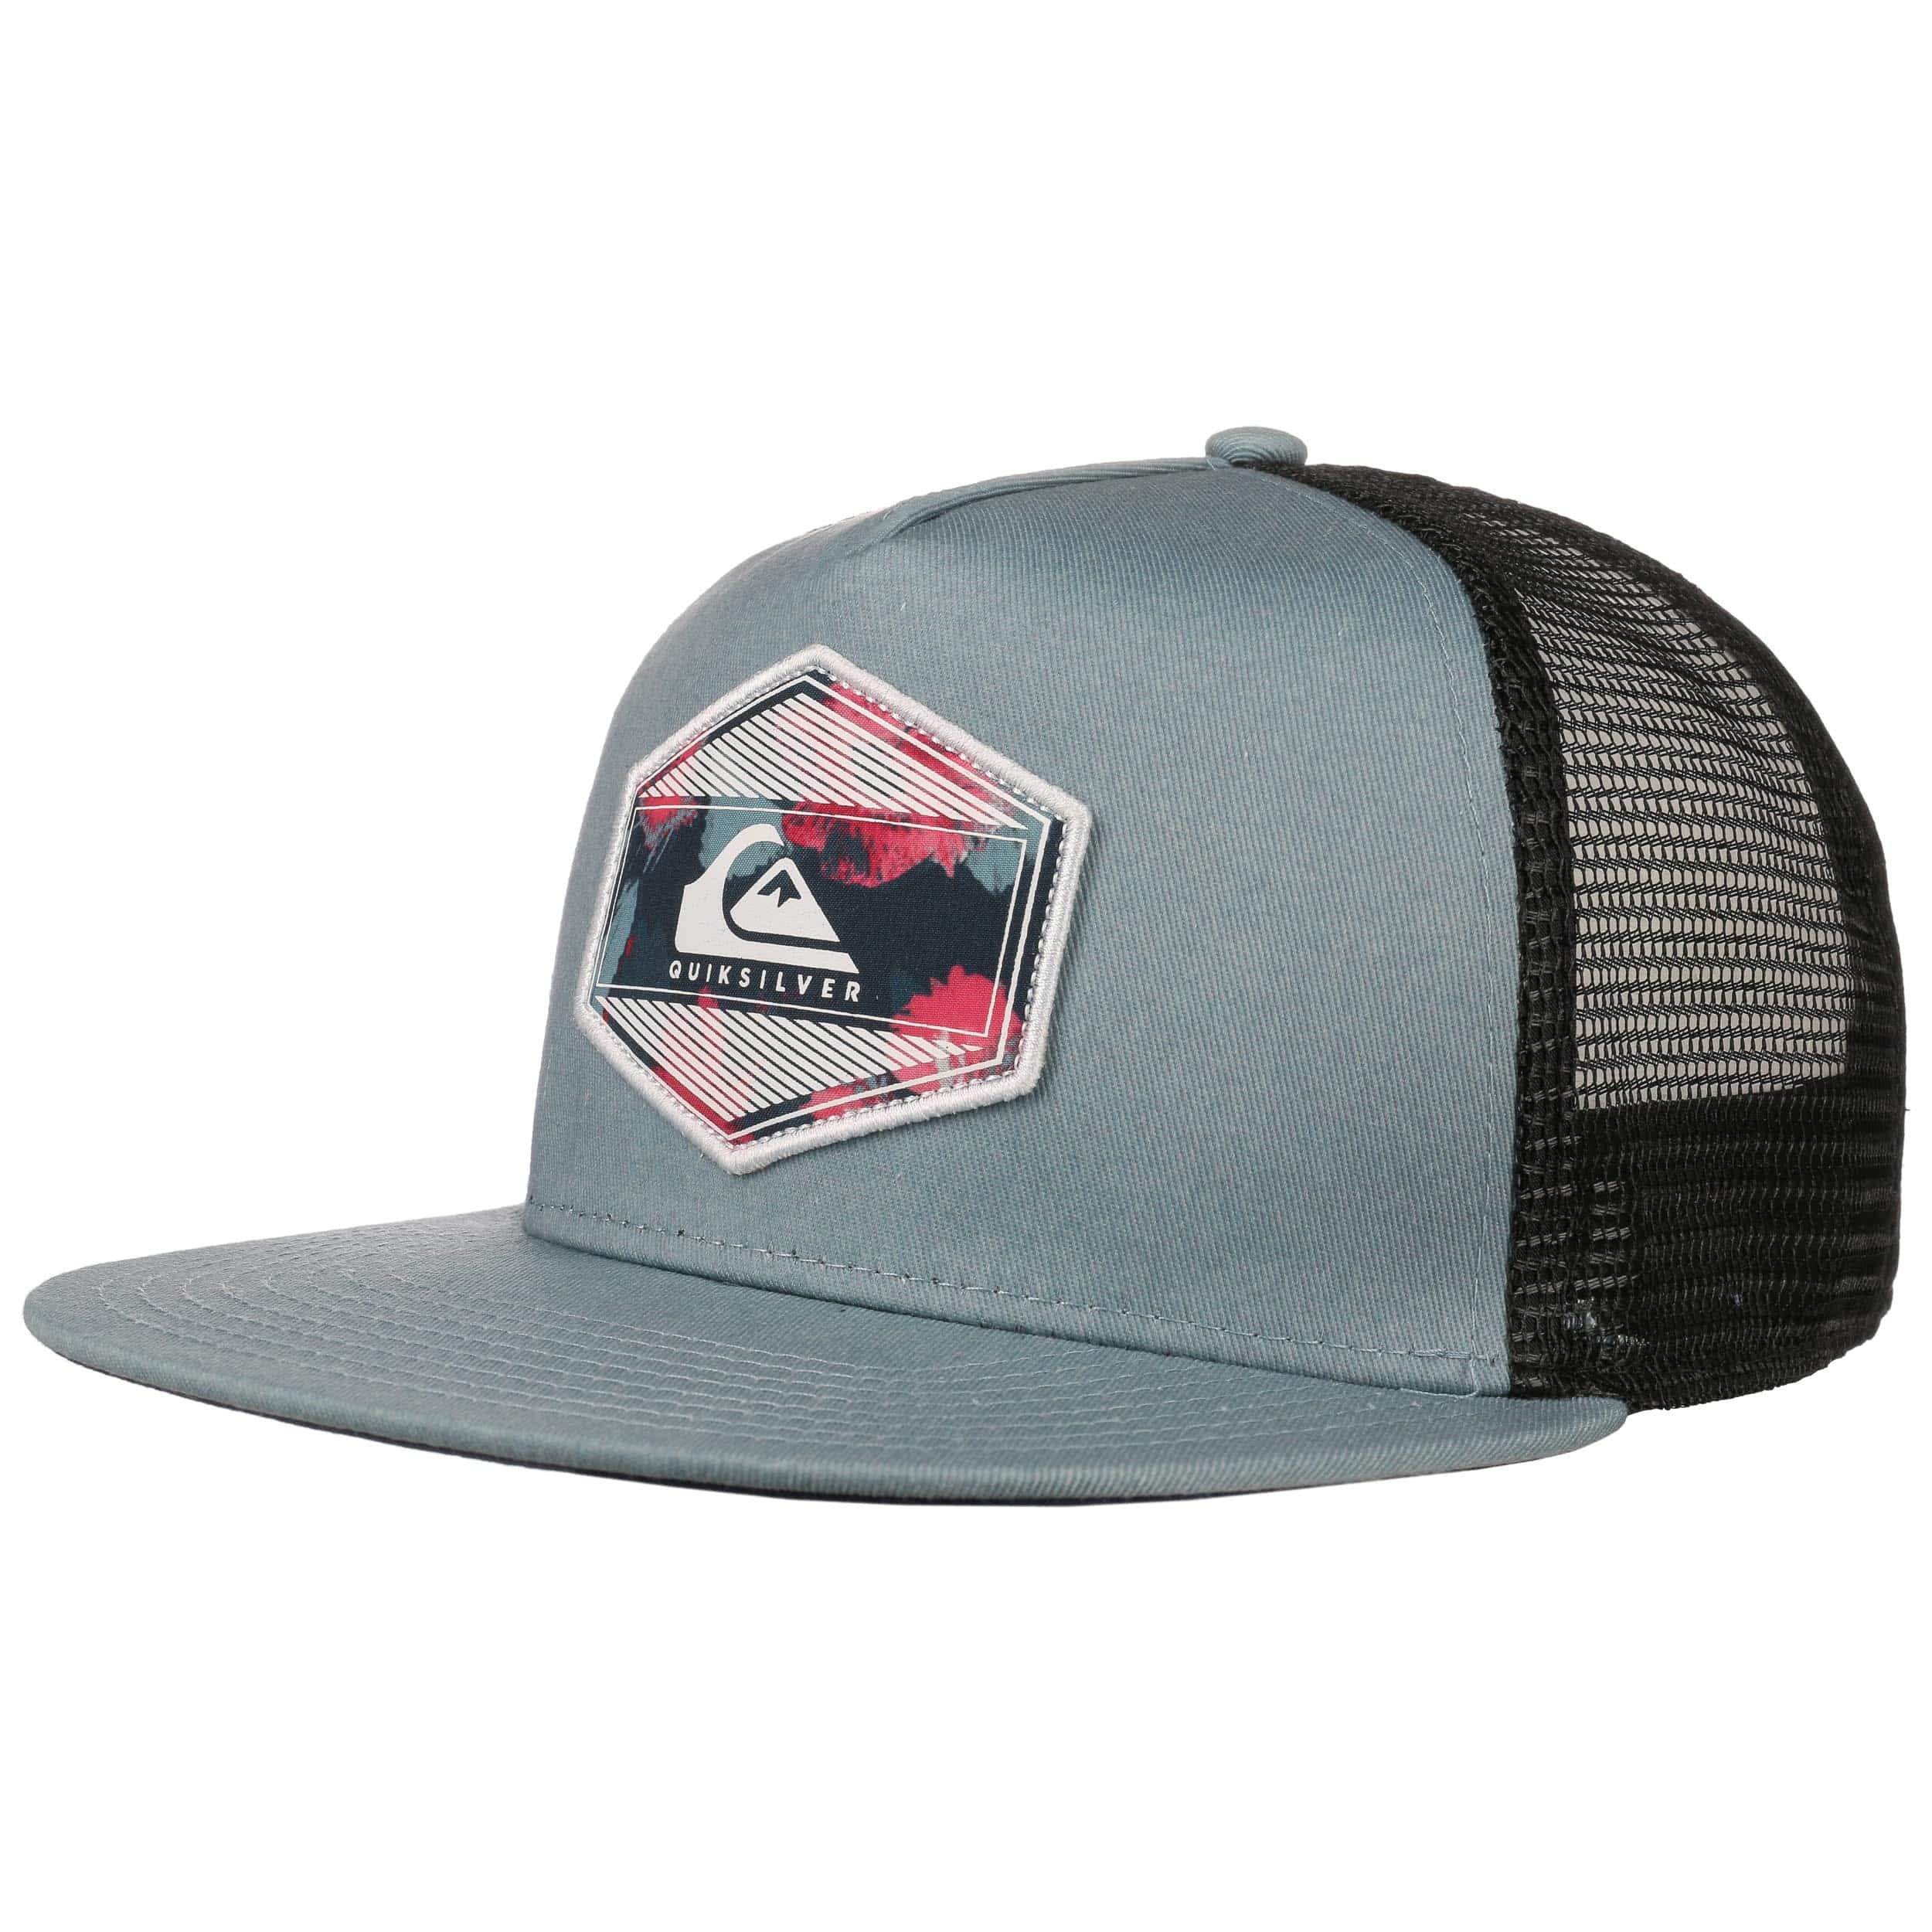 ... low price morsen trucker cap by quiksilver light blue 5 85ead 95501 ab688e2265c